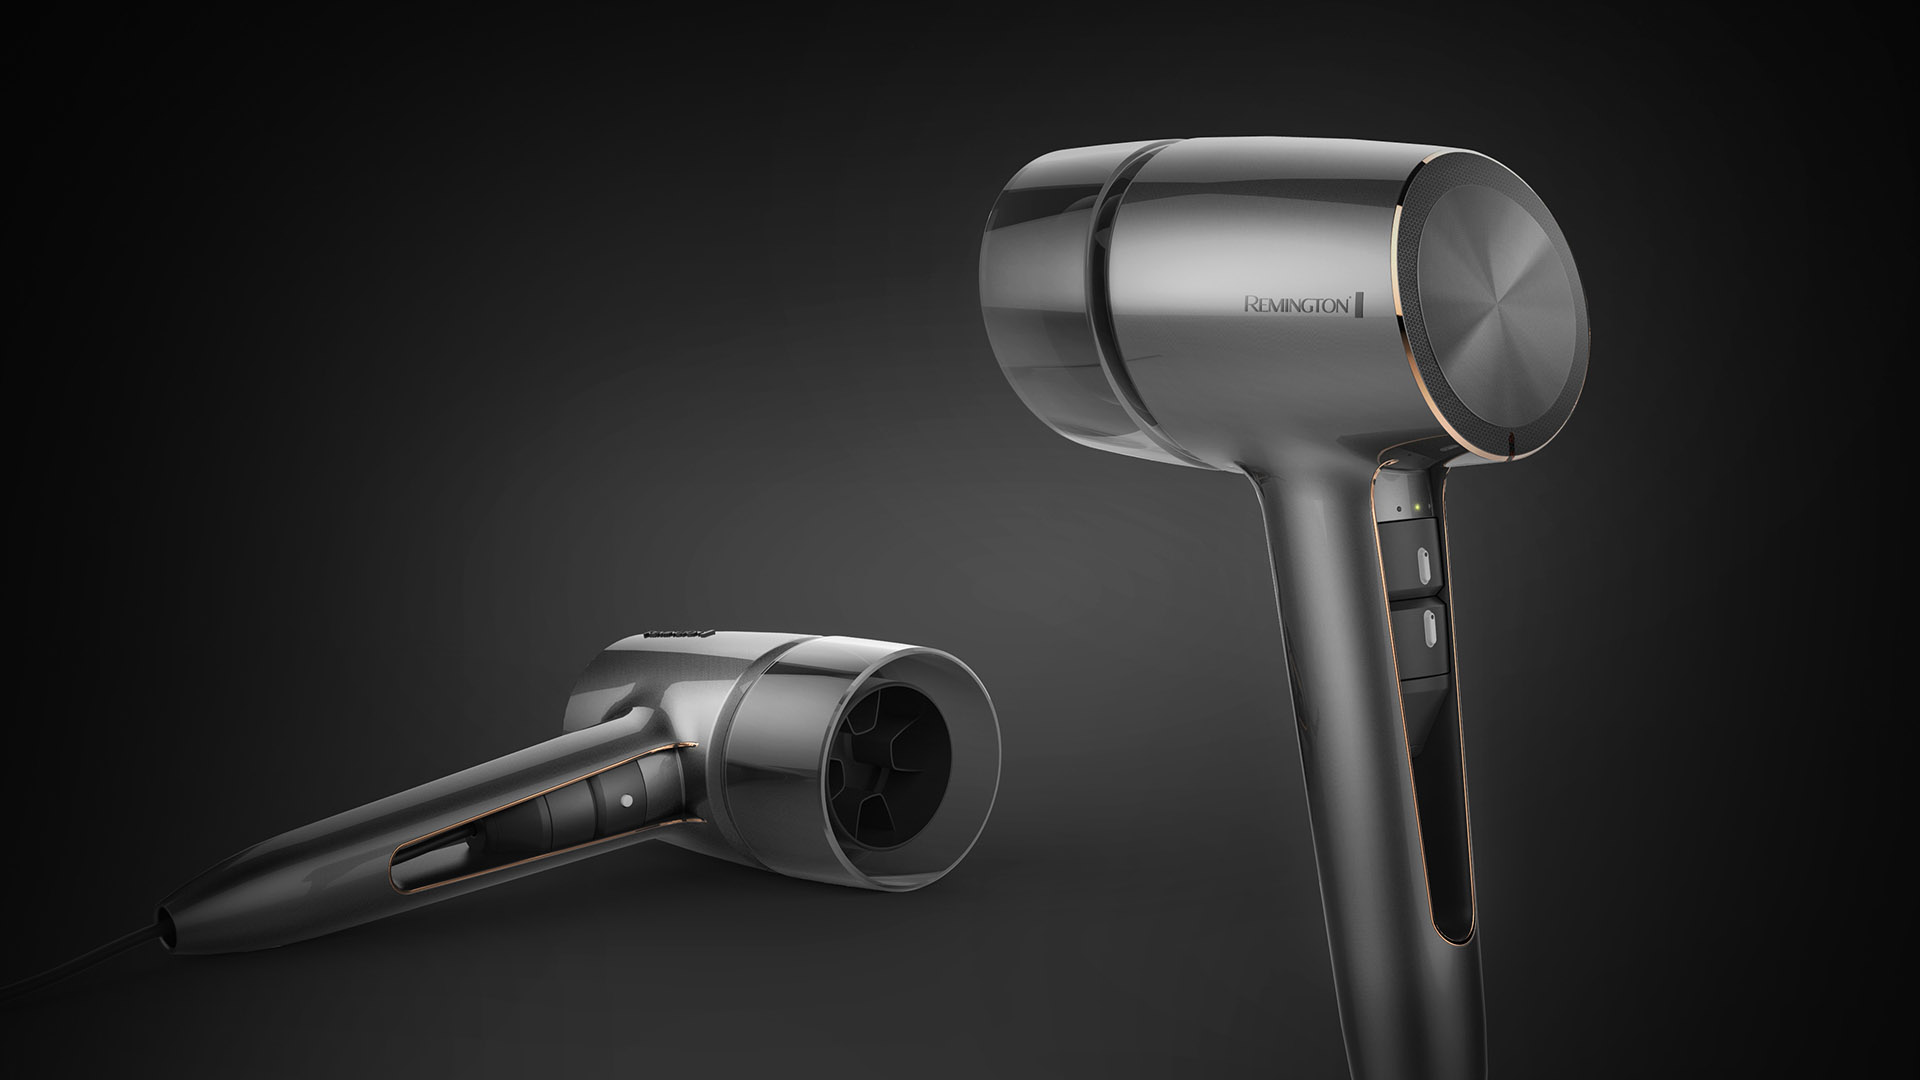 Hair Dryer Design ~ Remington hair dryer design concept orlach